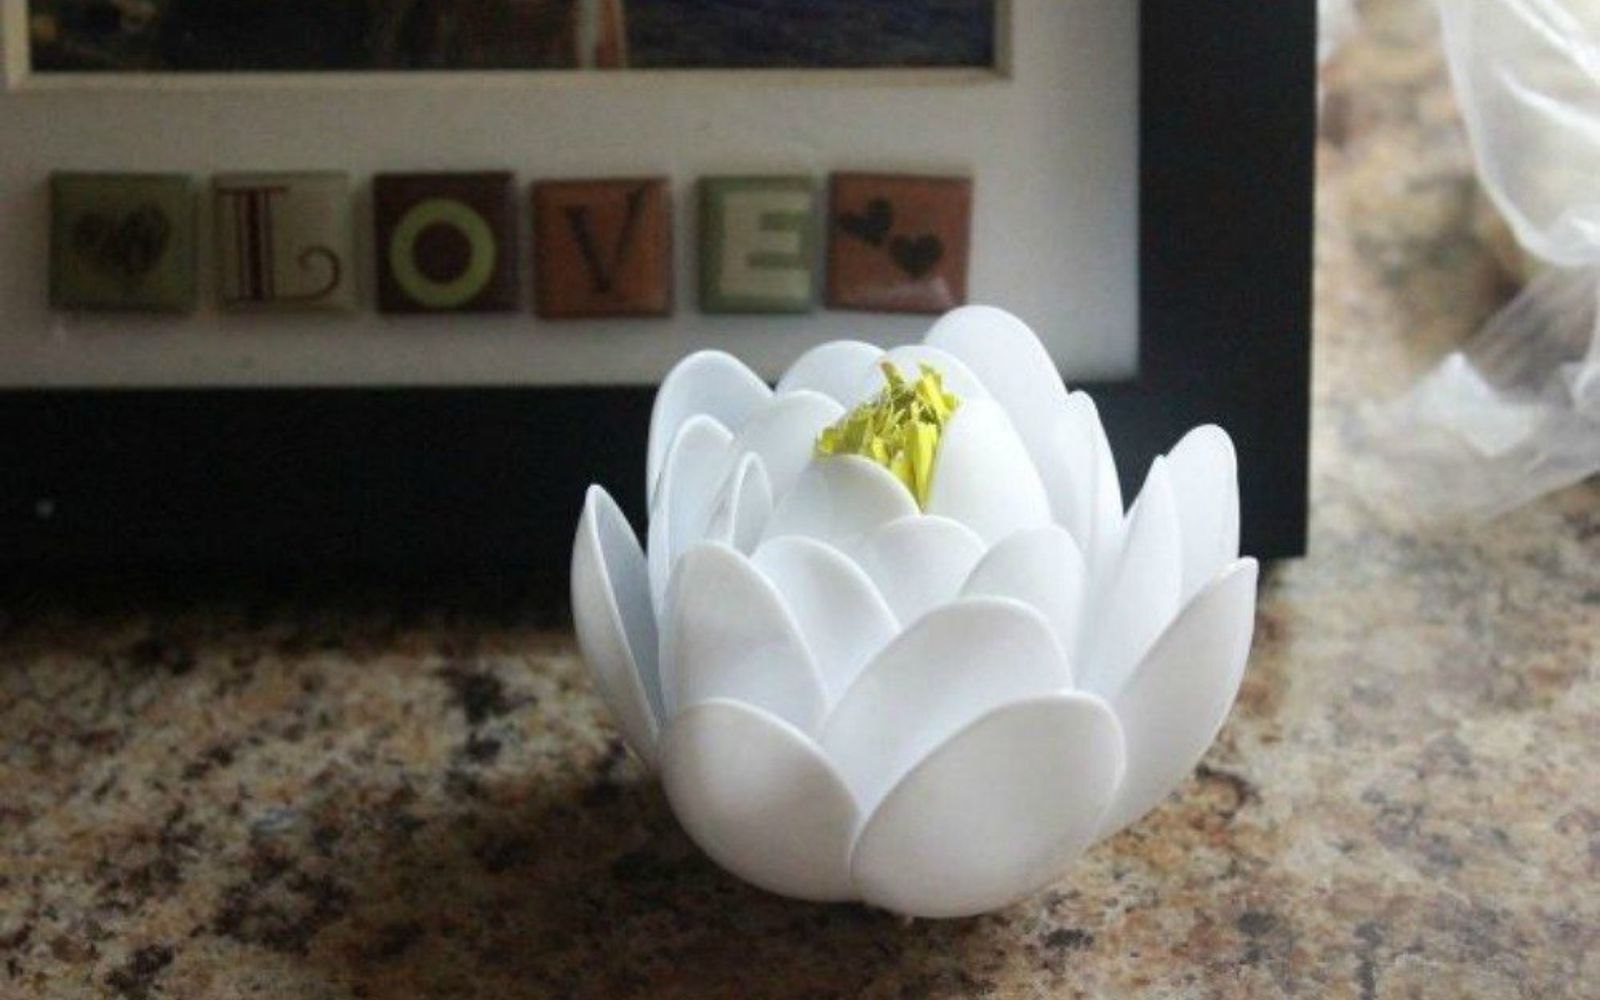 s 11 brilliant ways to reuse plastic spoons, Turn them into decorative white lotuses